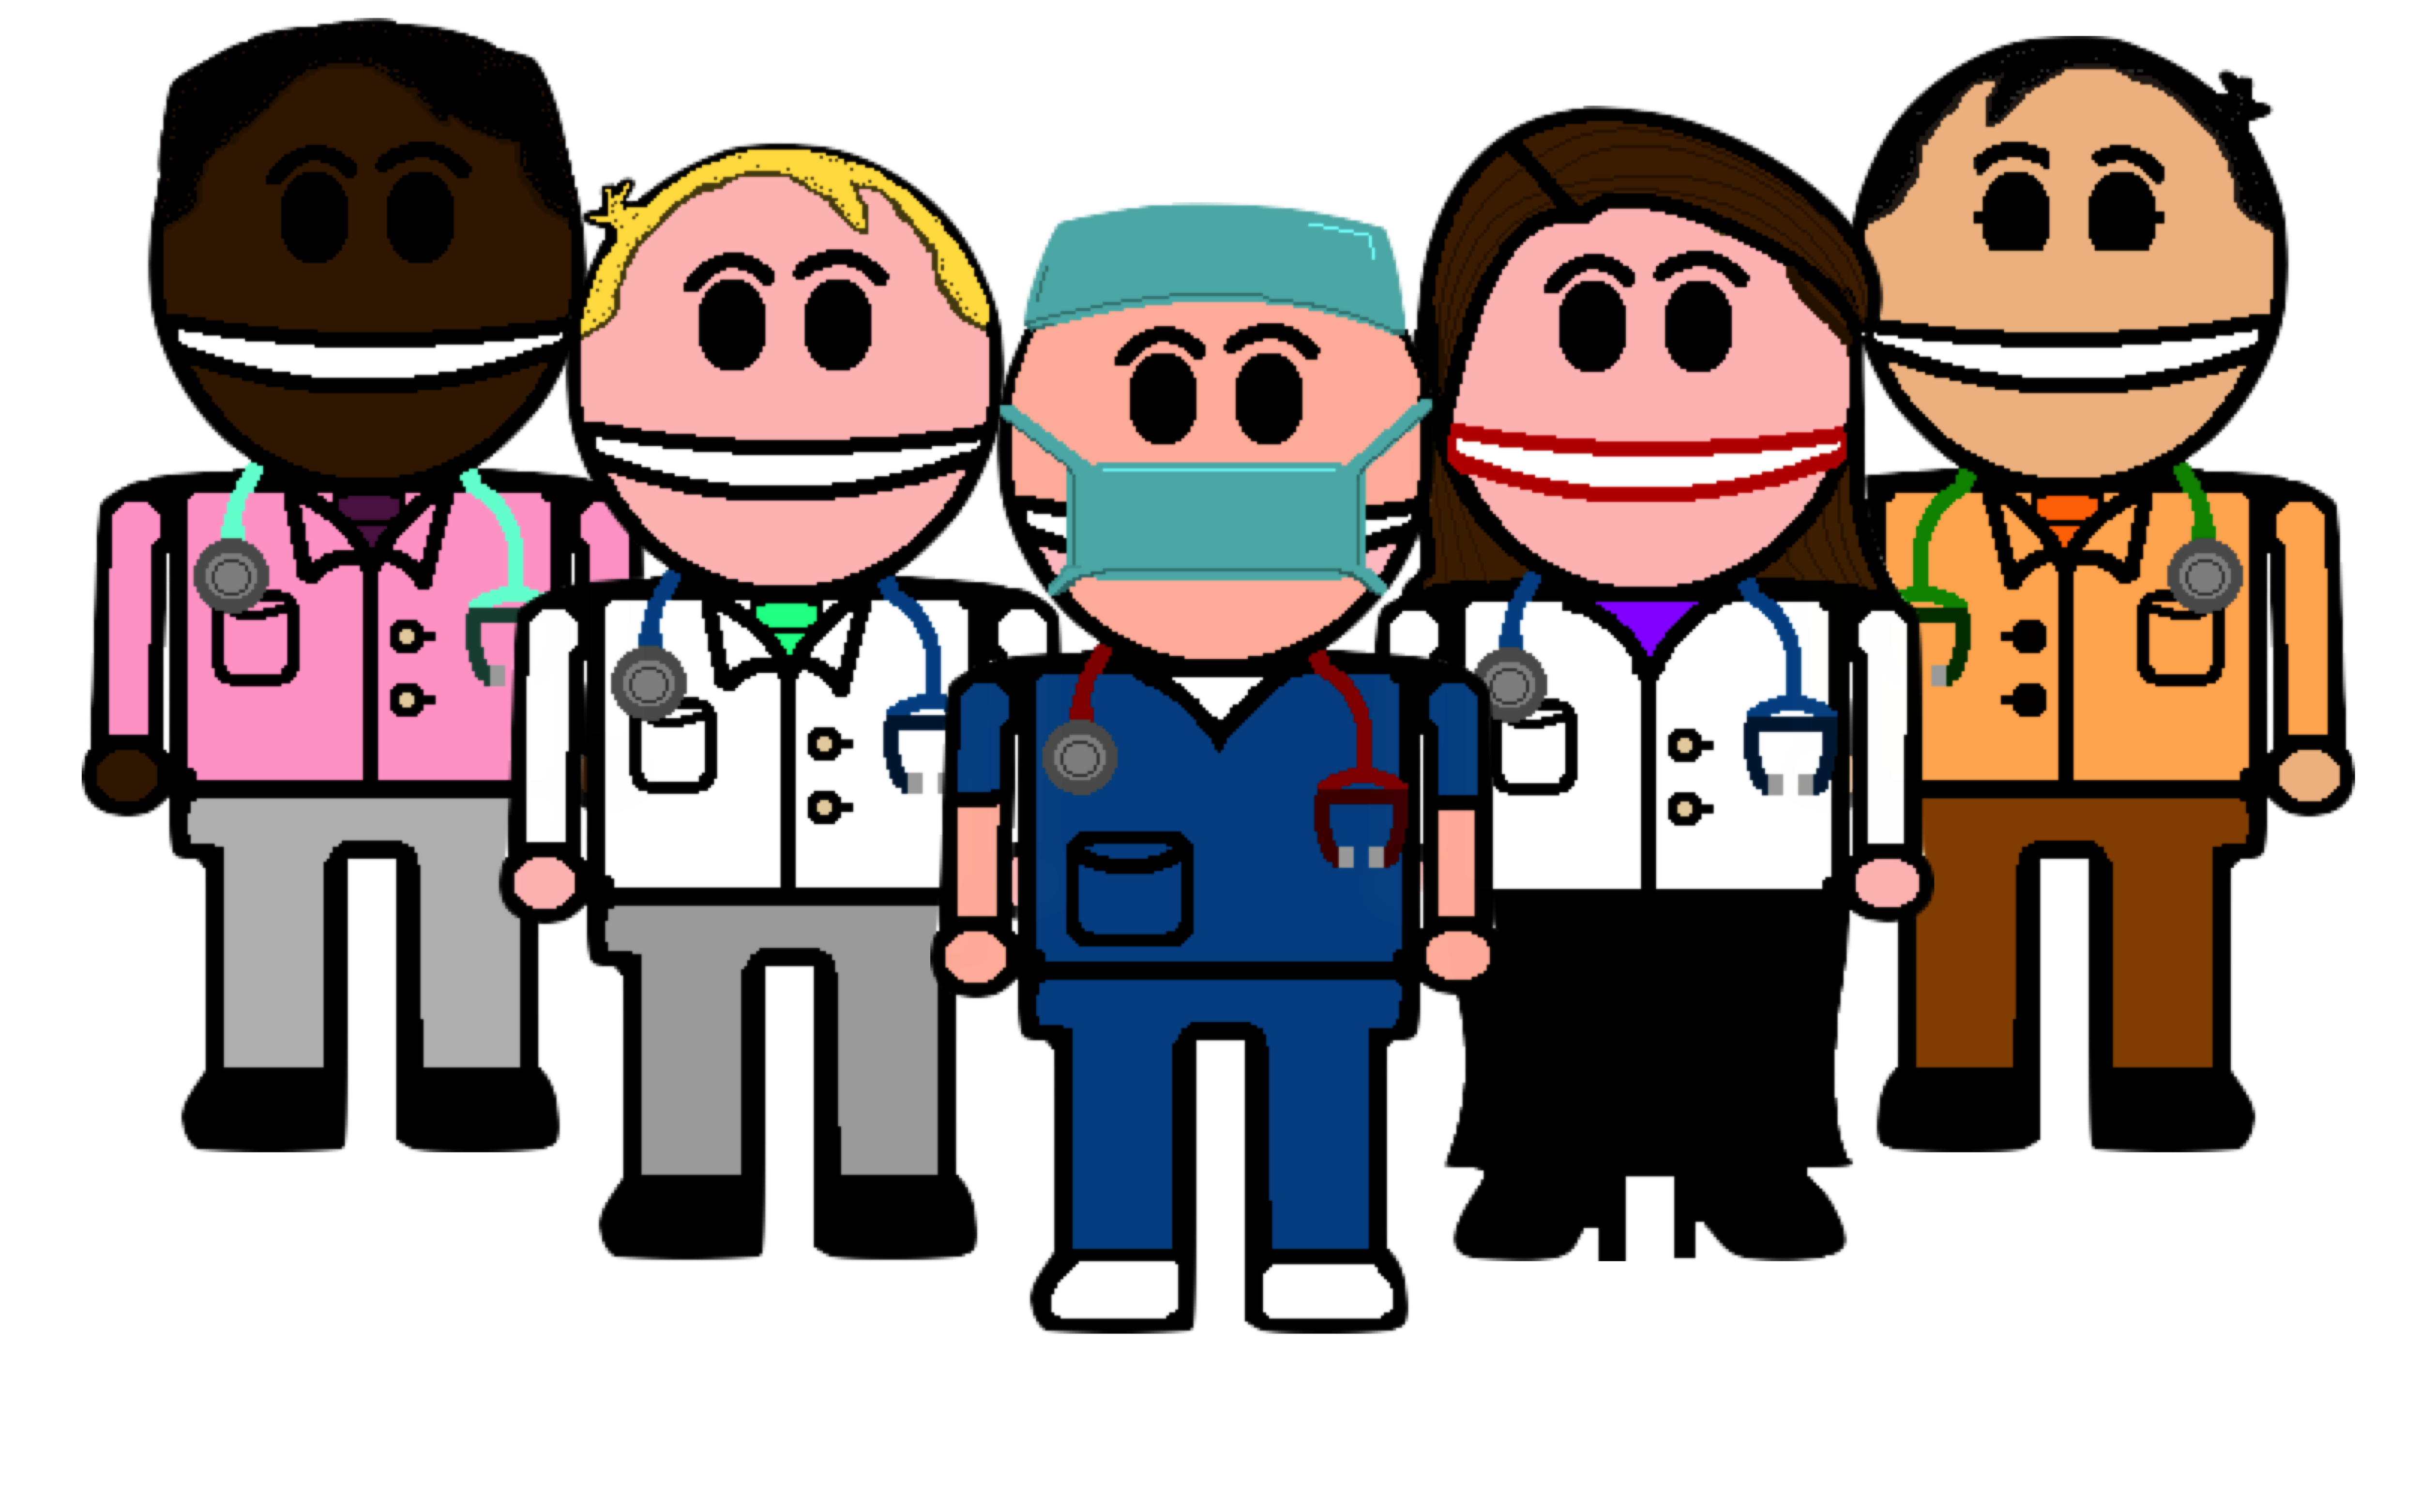 When applying to medical schools how can you make yourself stand out from the crowd?